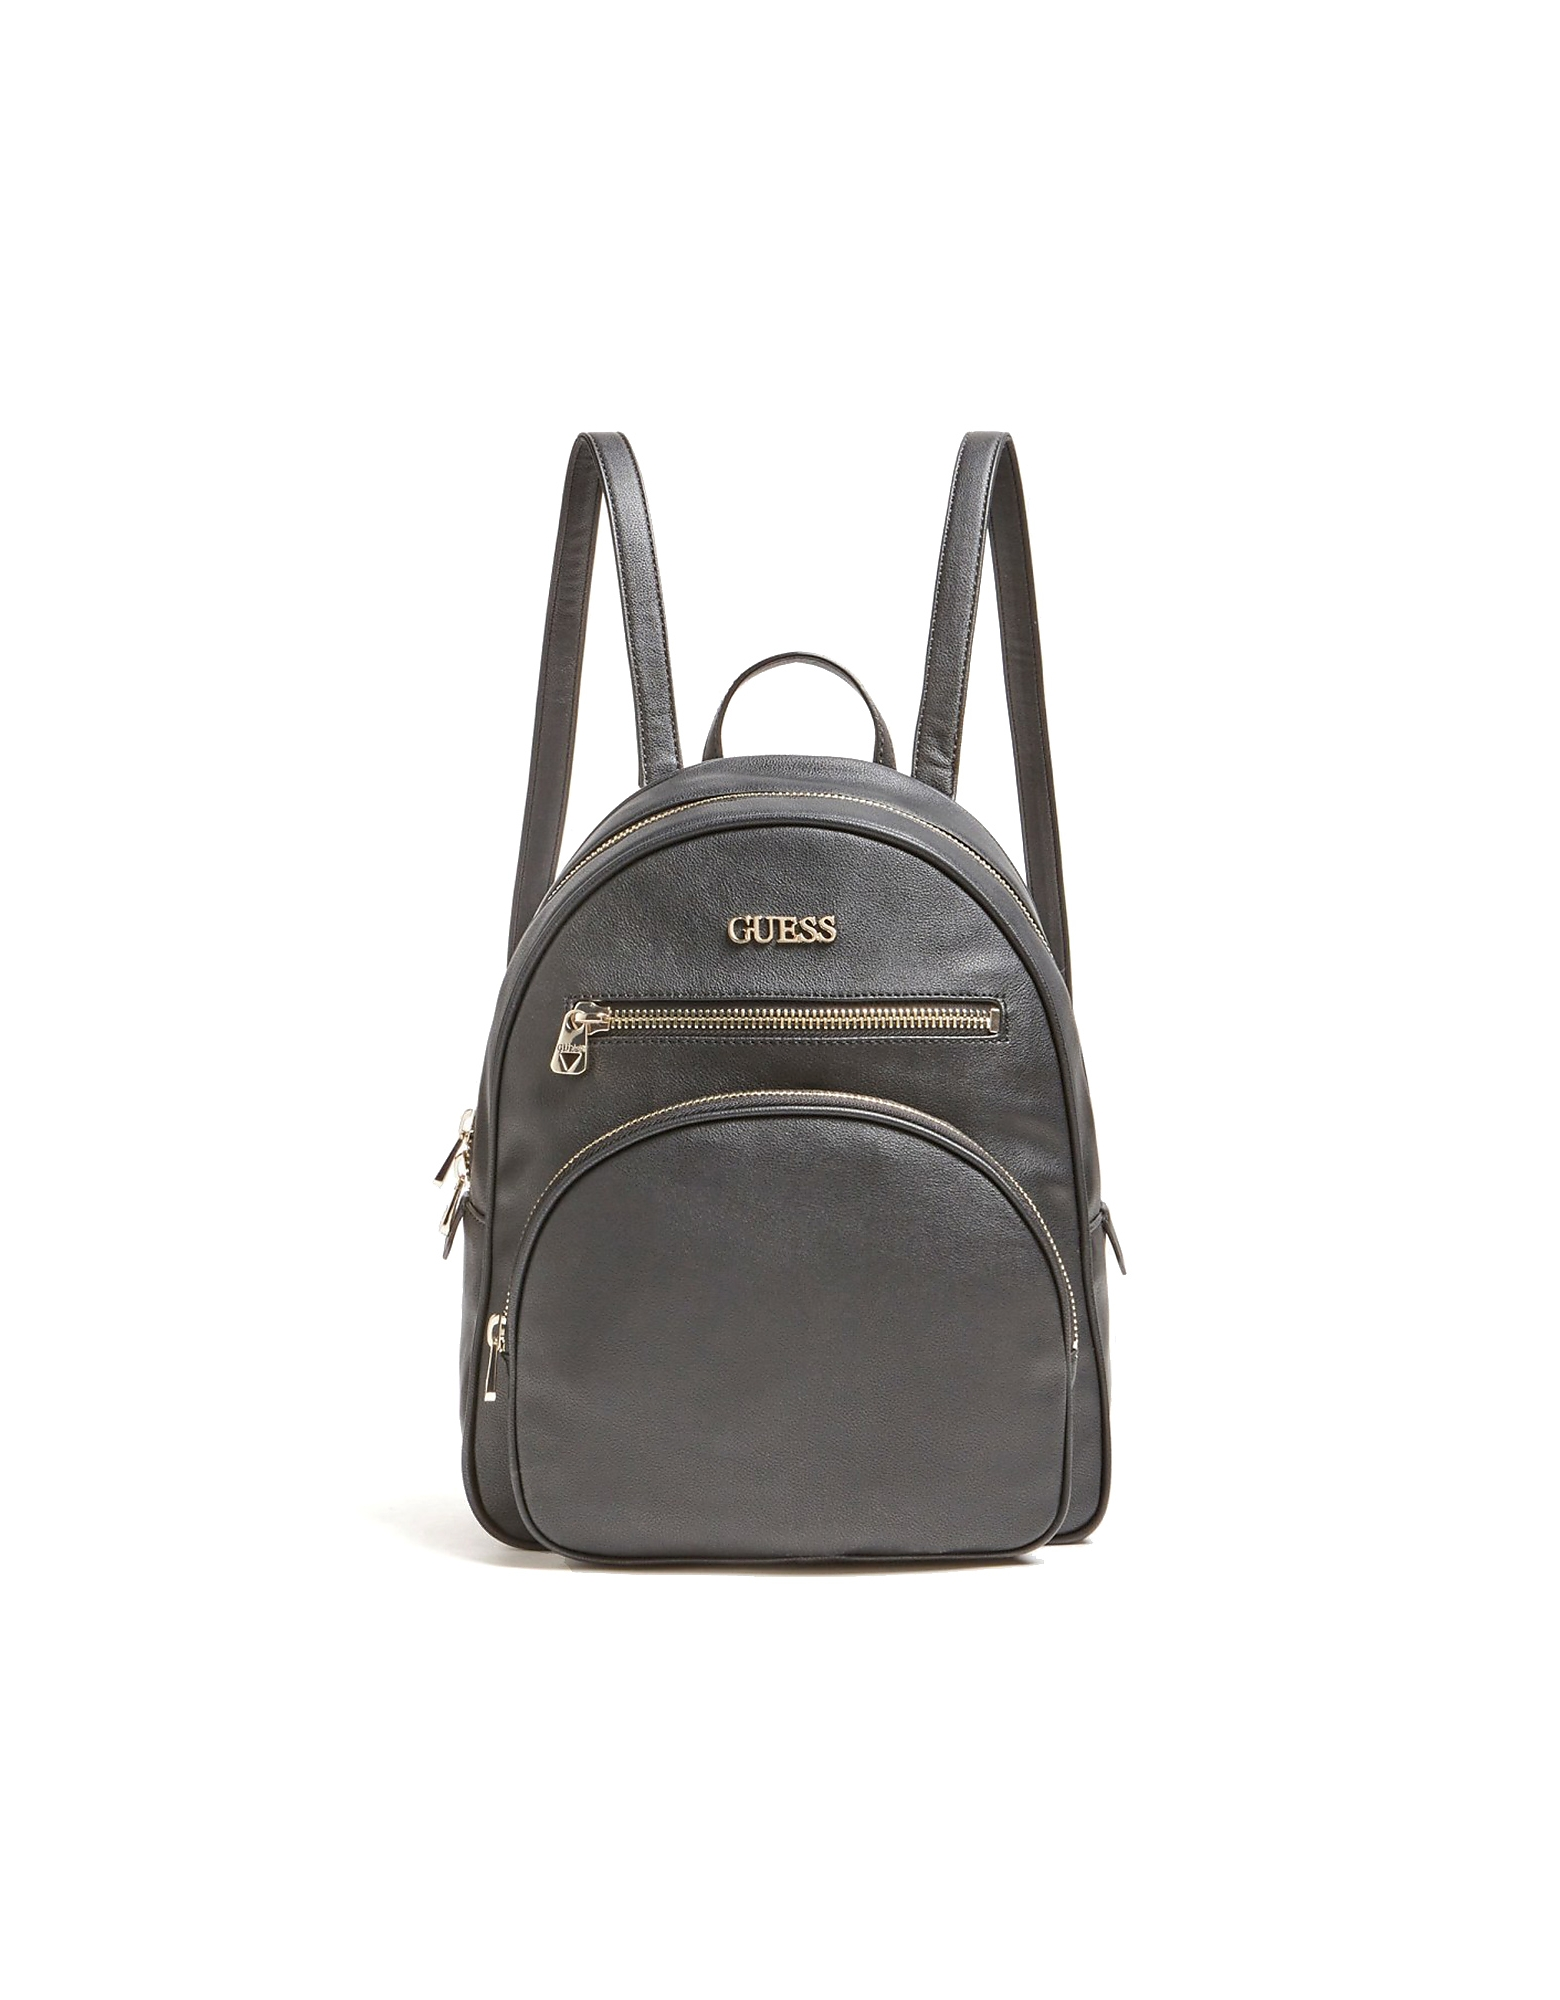 Guess Designer Handbags, Women's Black Backpack